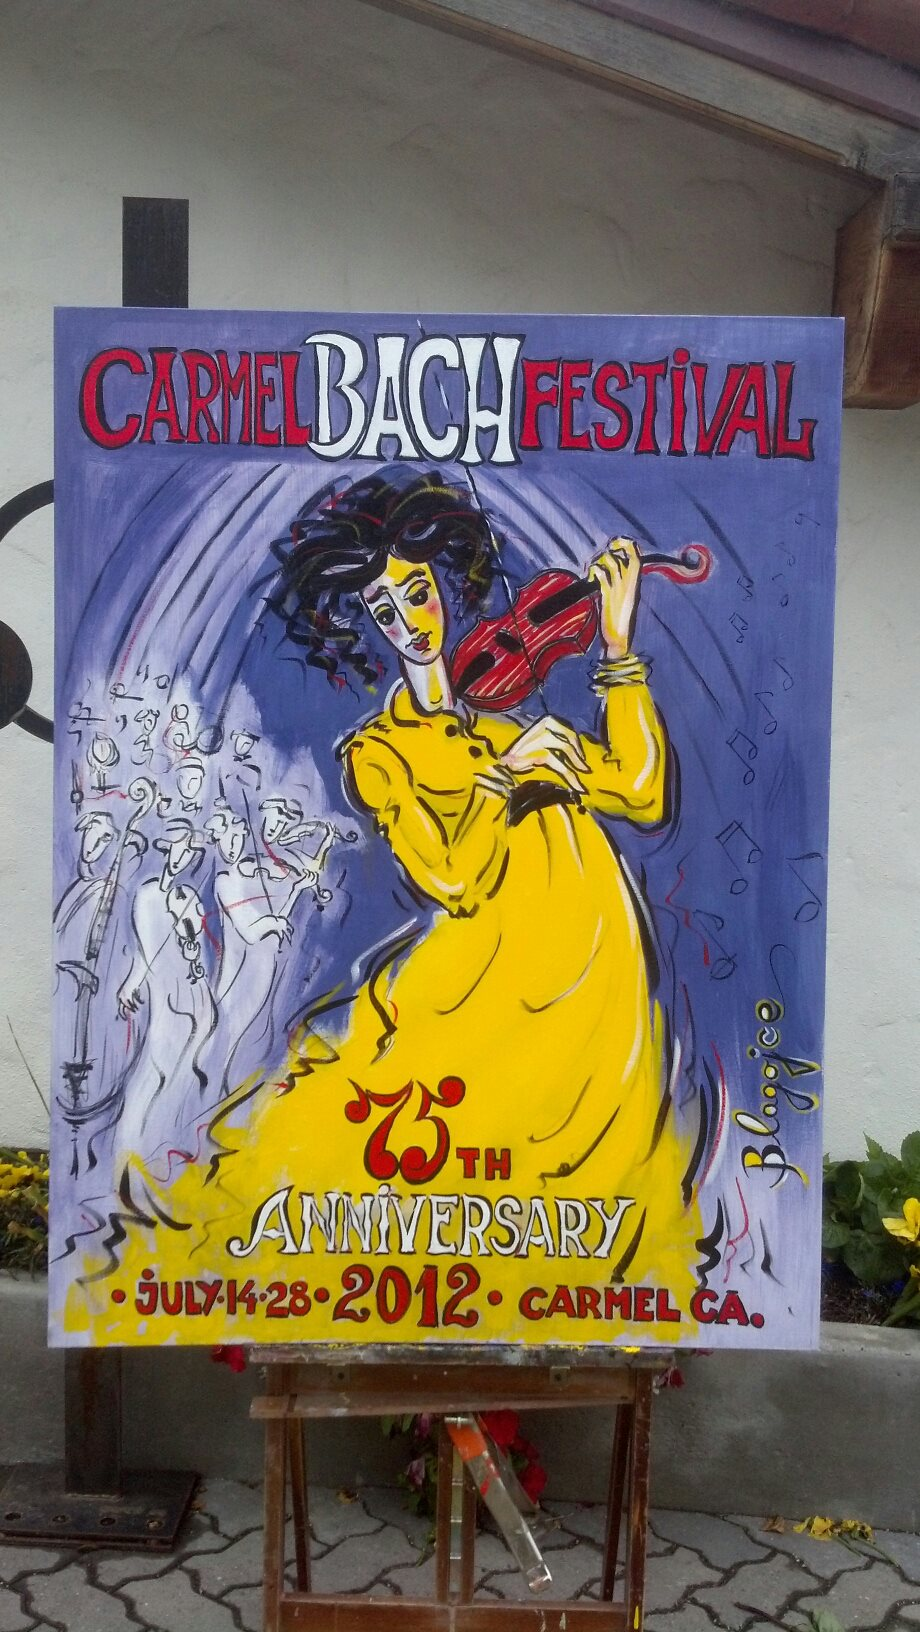 2012 Carmel Bach Festival Poster - in progress